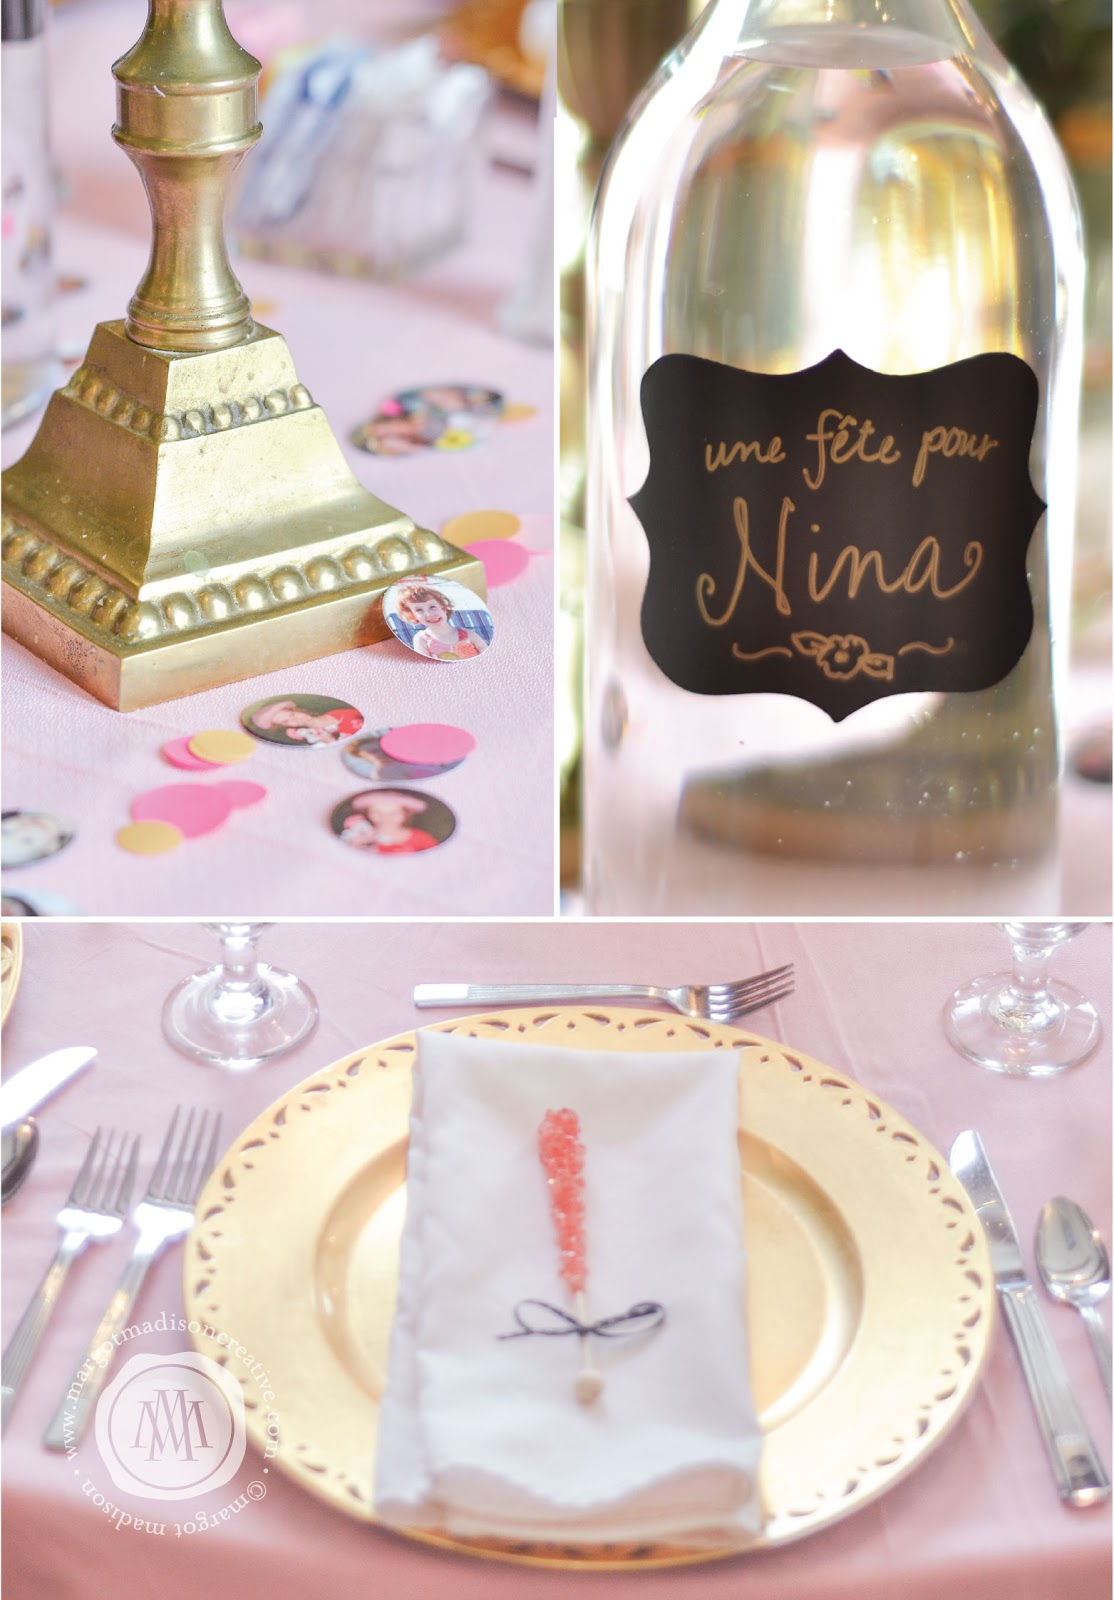 Margotmadison A Pink And Gold Parisian Party For Nina